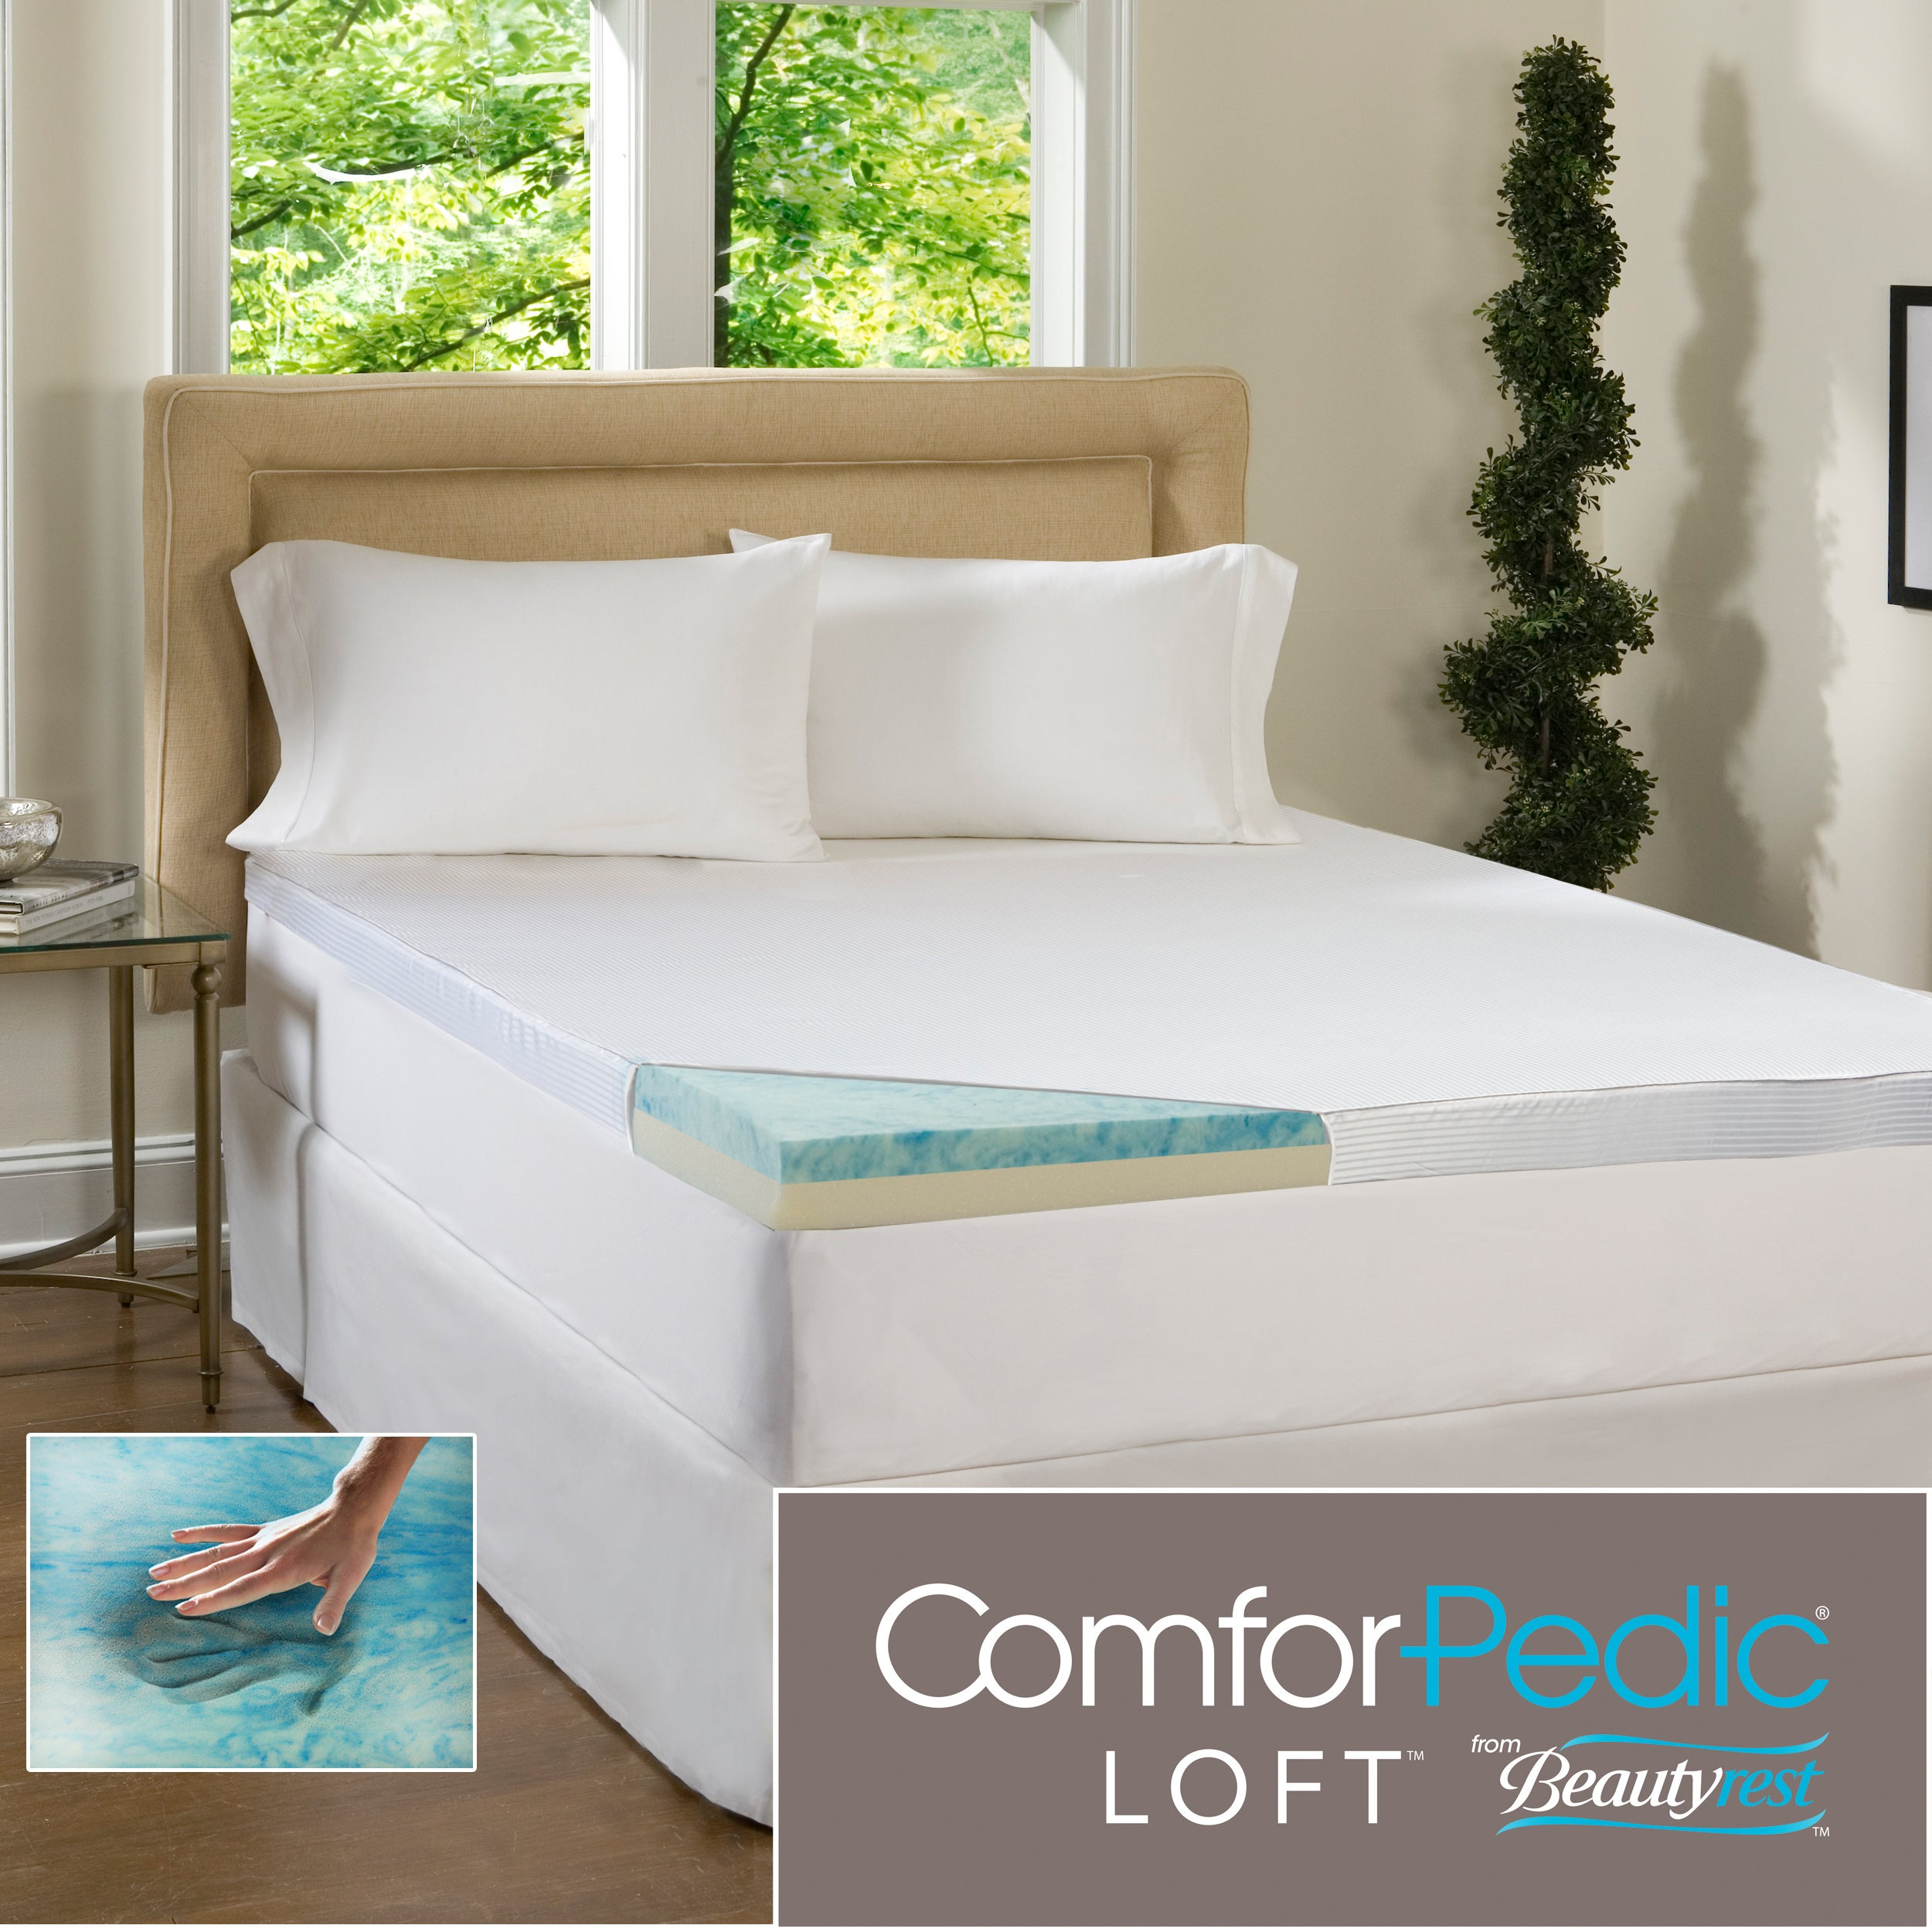 Beautyrest 3-inch Flat Select Gel Memory Foam Mattress Topper with Cover at Sears.com